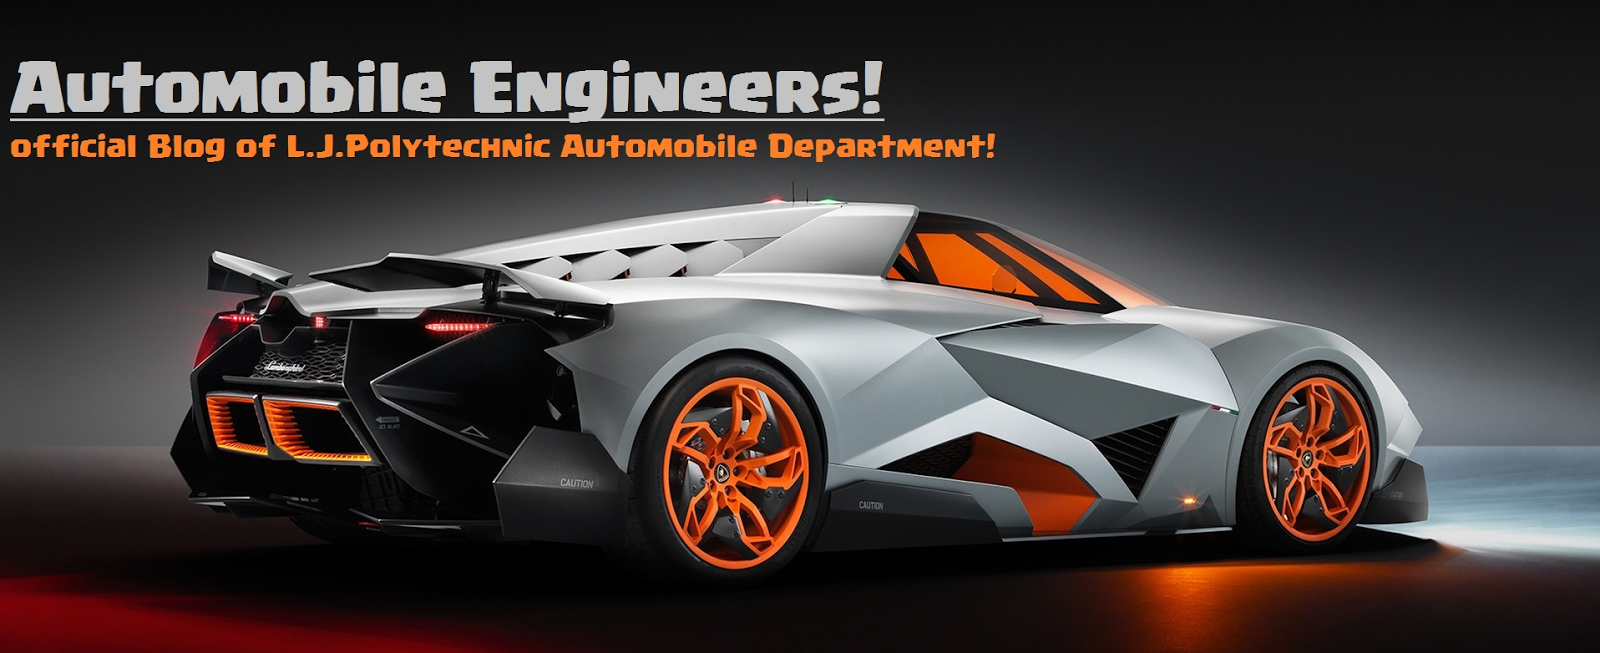 Automobile Engineering For Automobile Enginners Vehicle Body Engineering